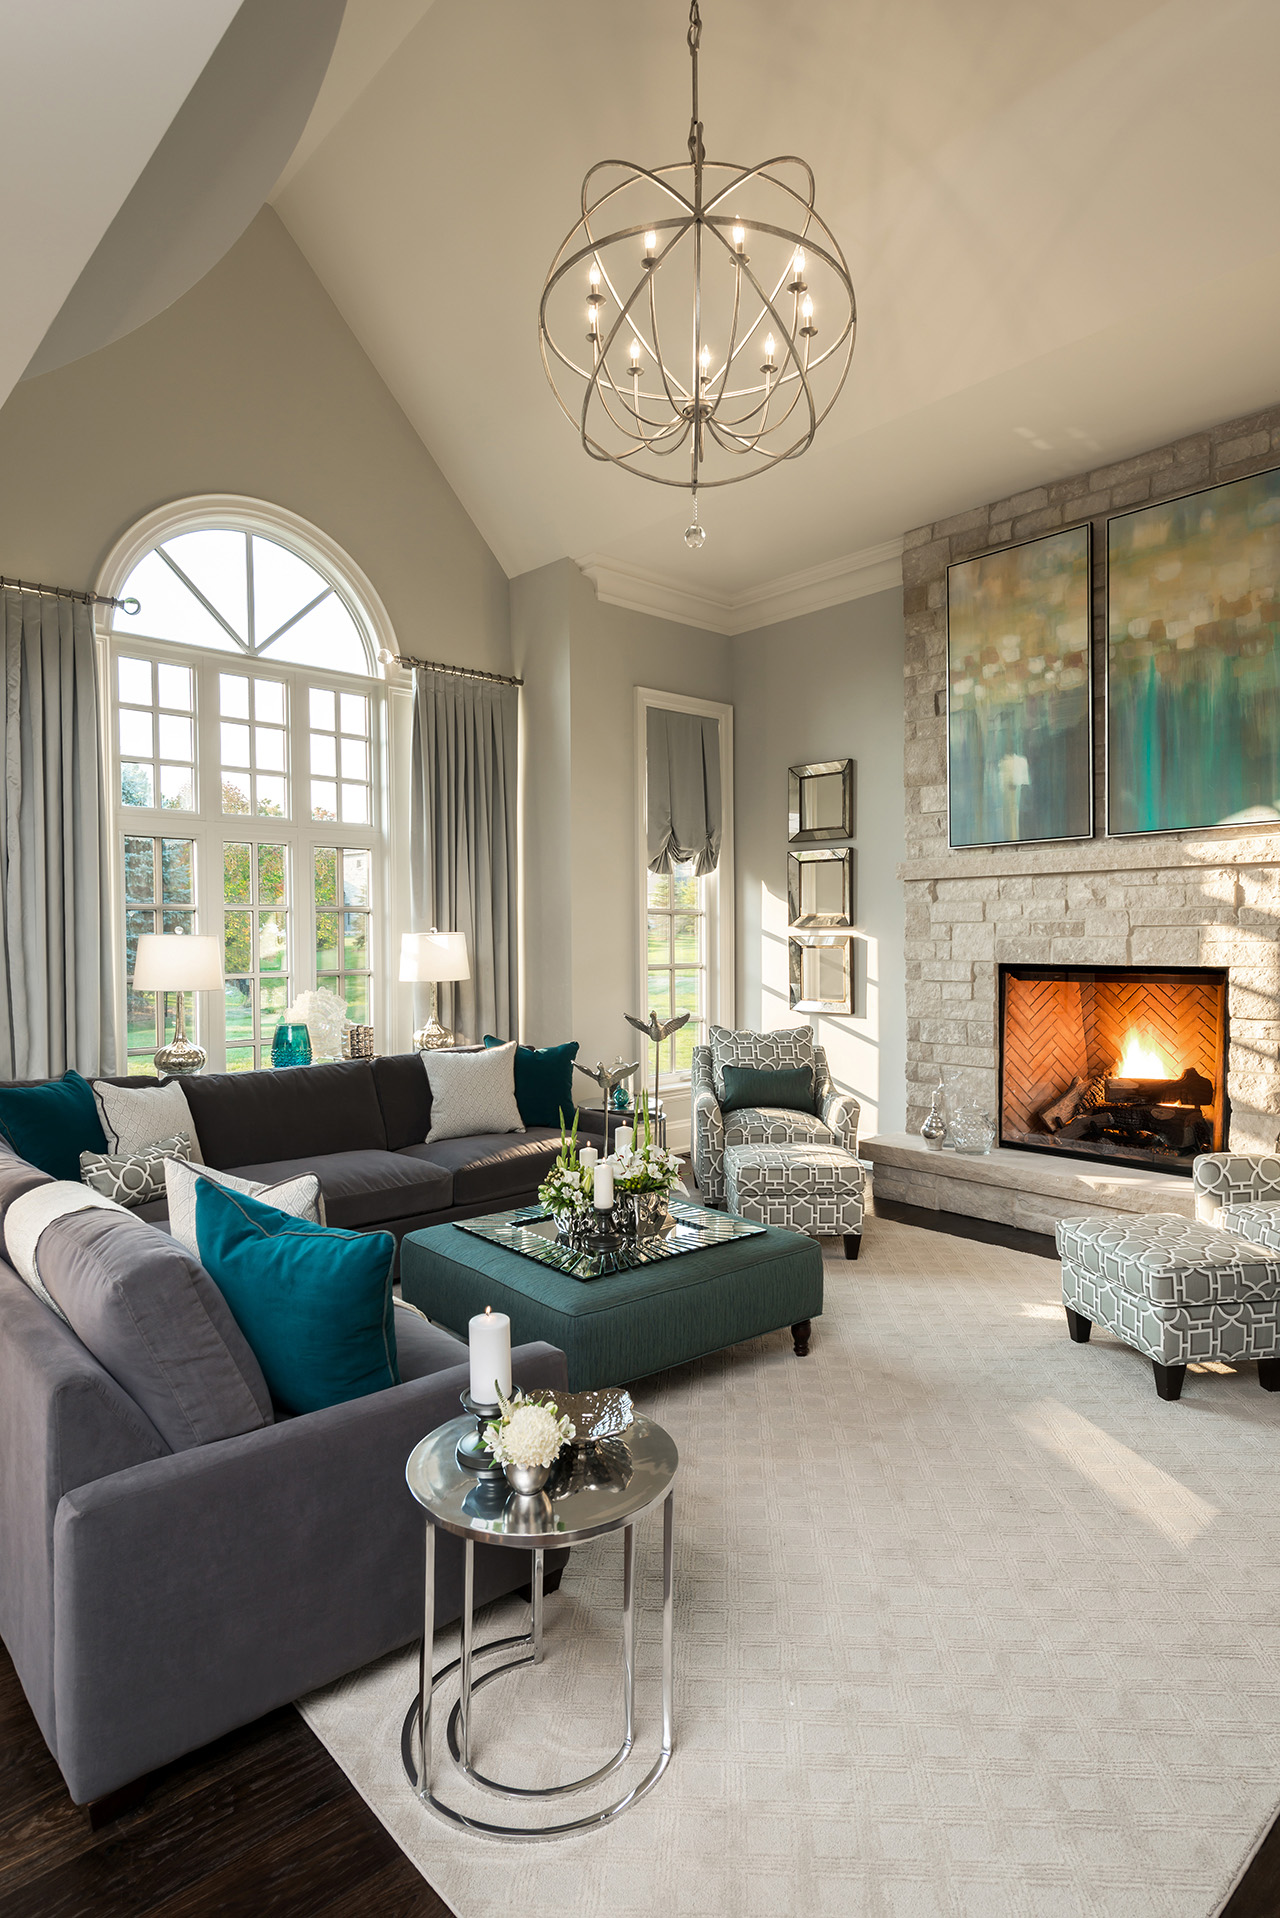 Popular Paint Color For Living Room Benjamin Moore Colors For Your Living Room Decor